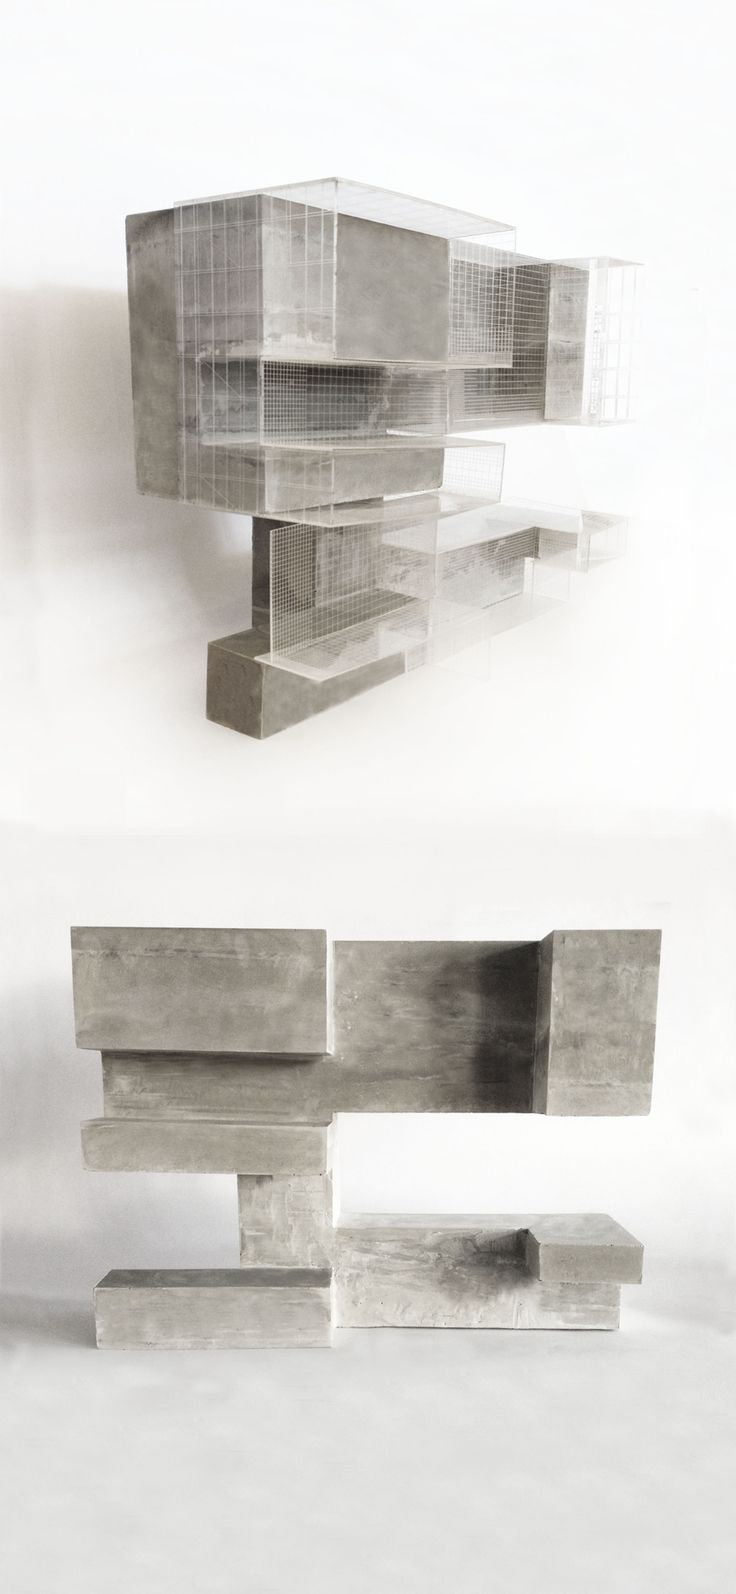 Example for a Model: Analytical Model of La Coruña Center for the Artsy